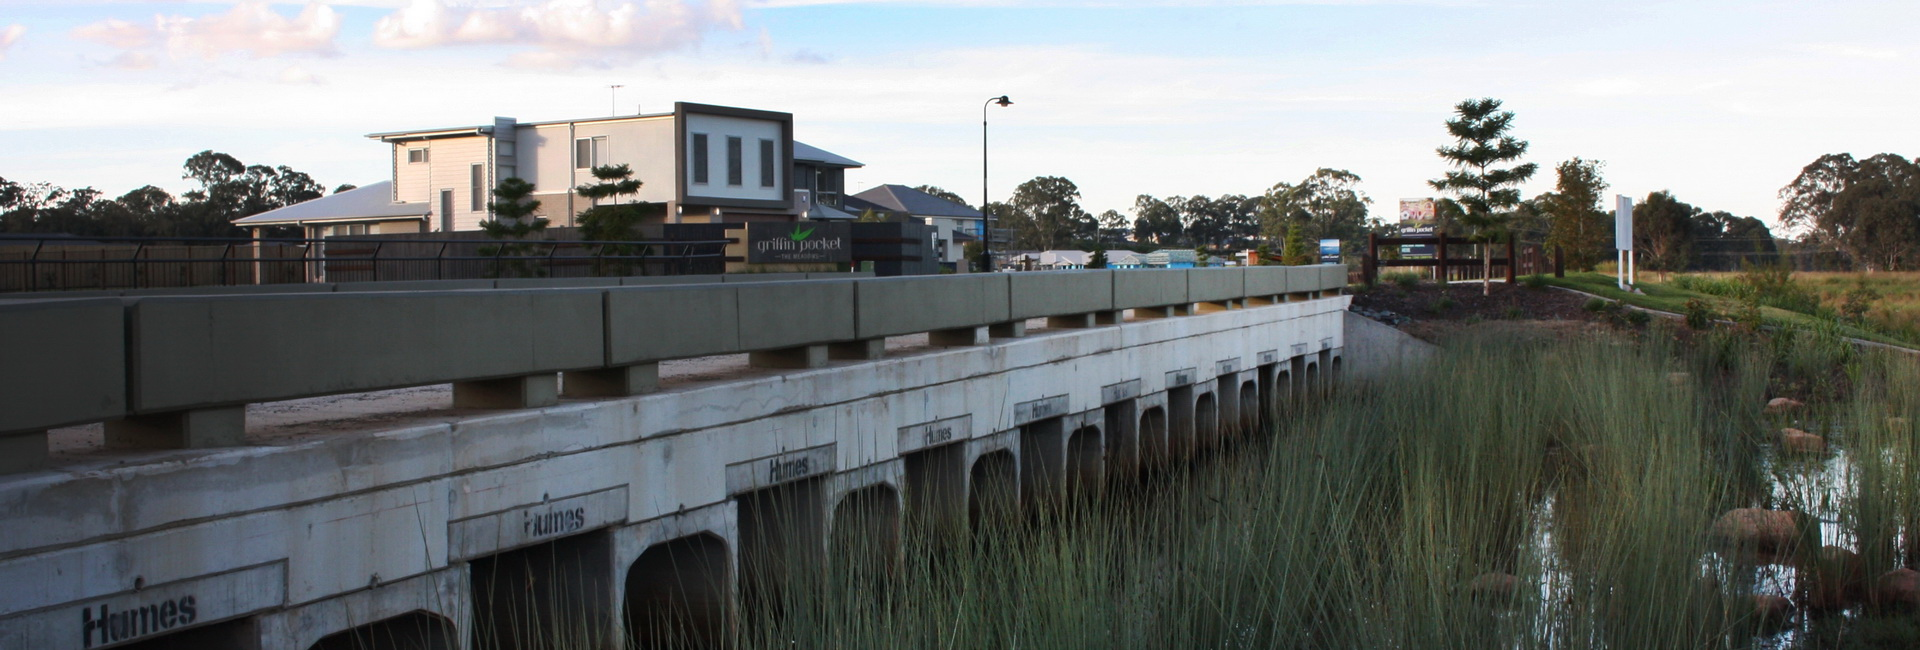 JFP Civil Engineers display proud involvement in ongoing Brisbane projects